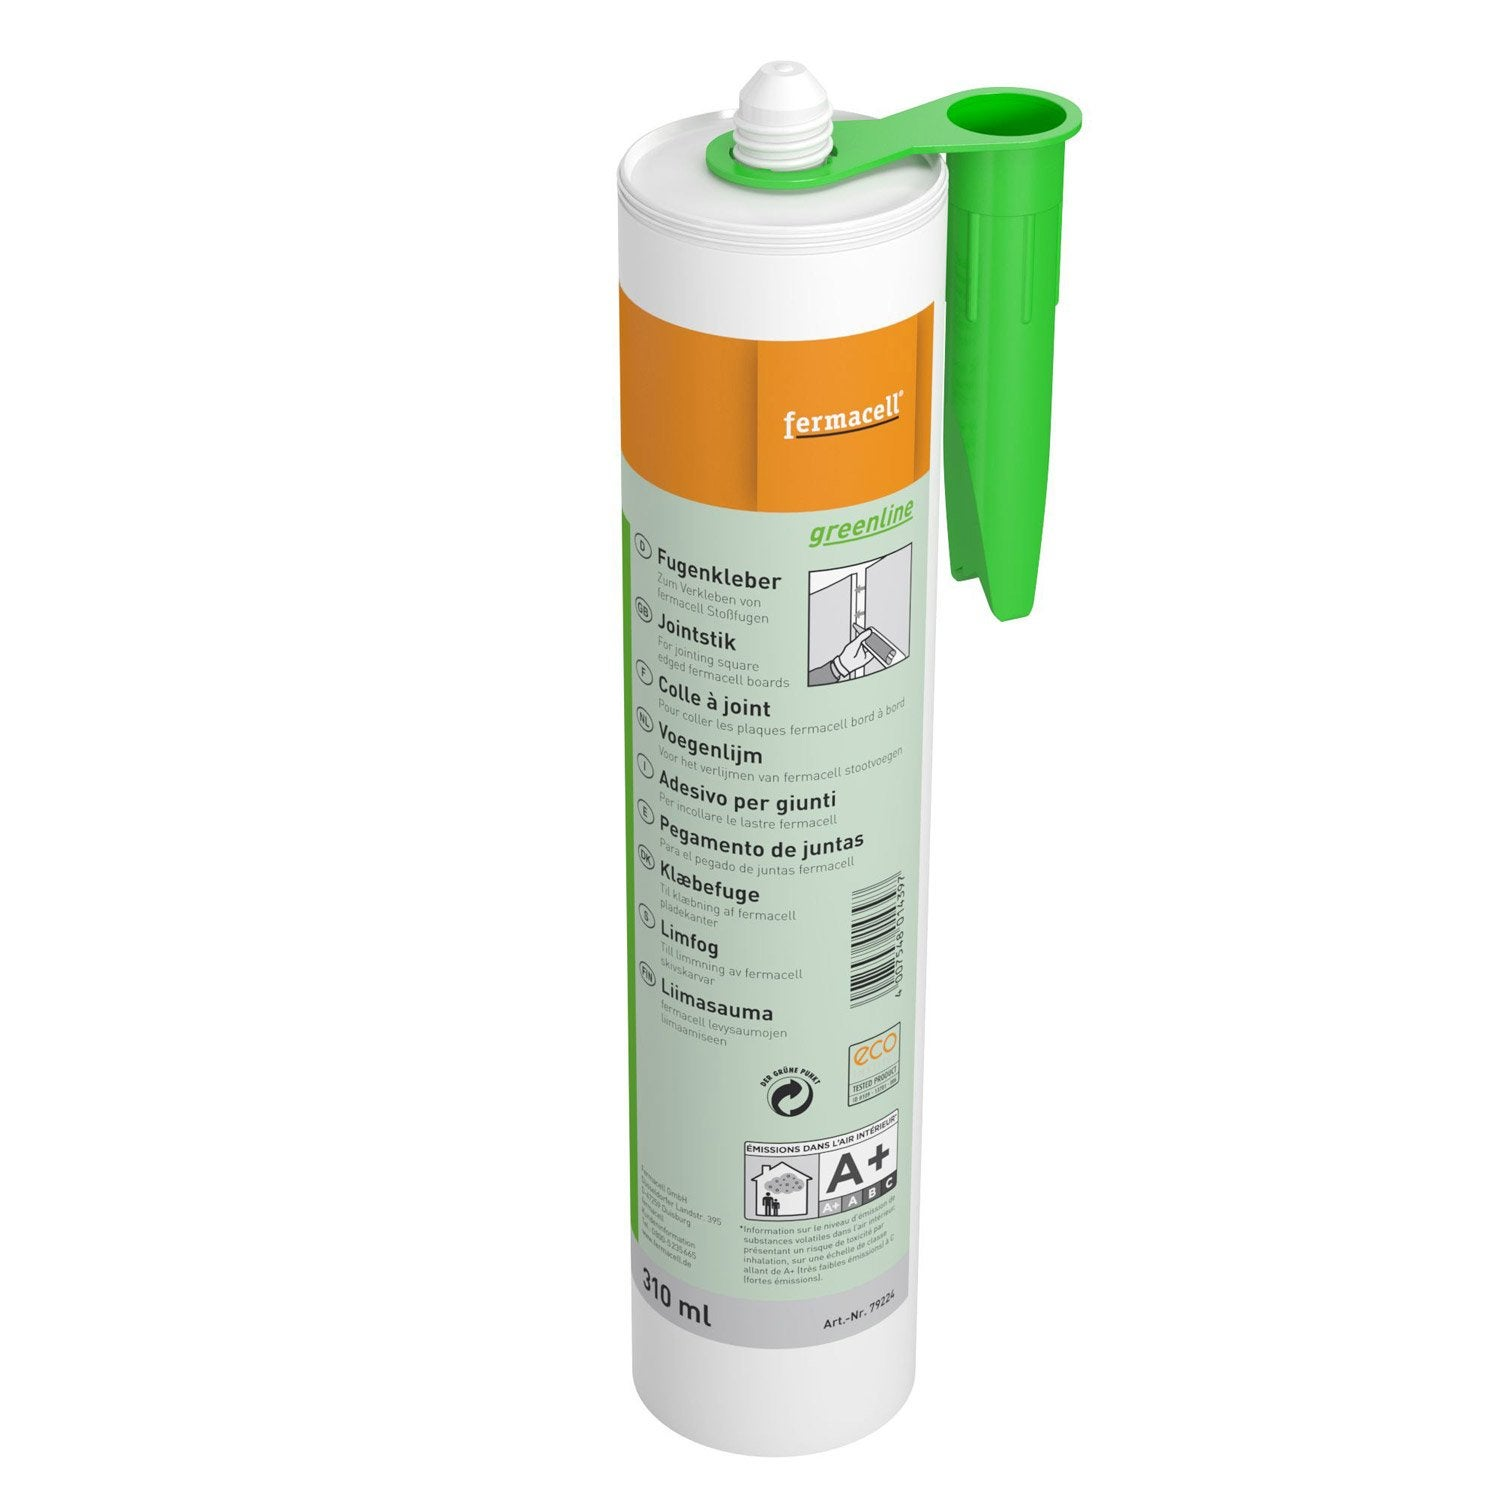 Colle joint greenline fermacell kg leroy merlin - Fermacell leroy merlin ...